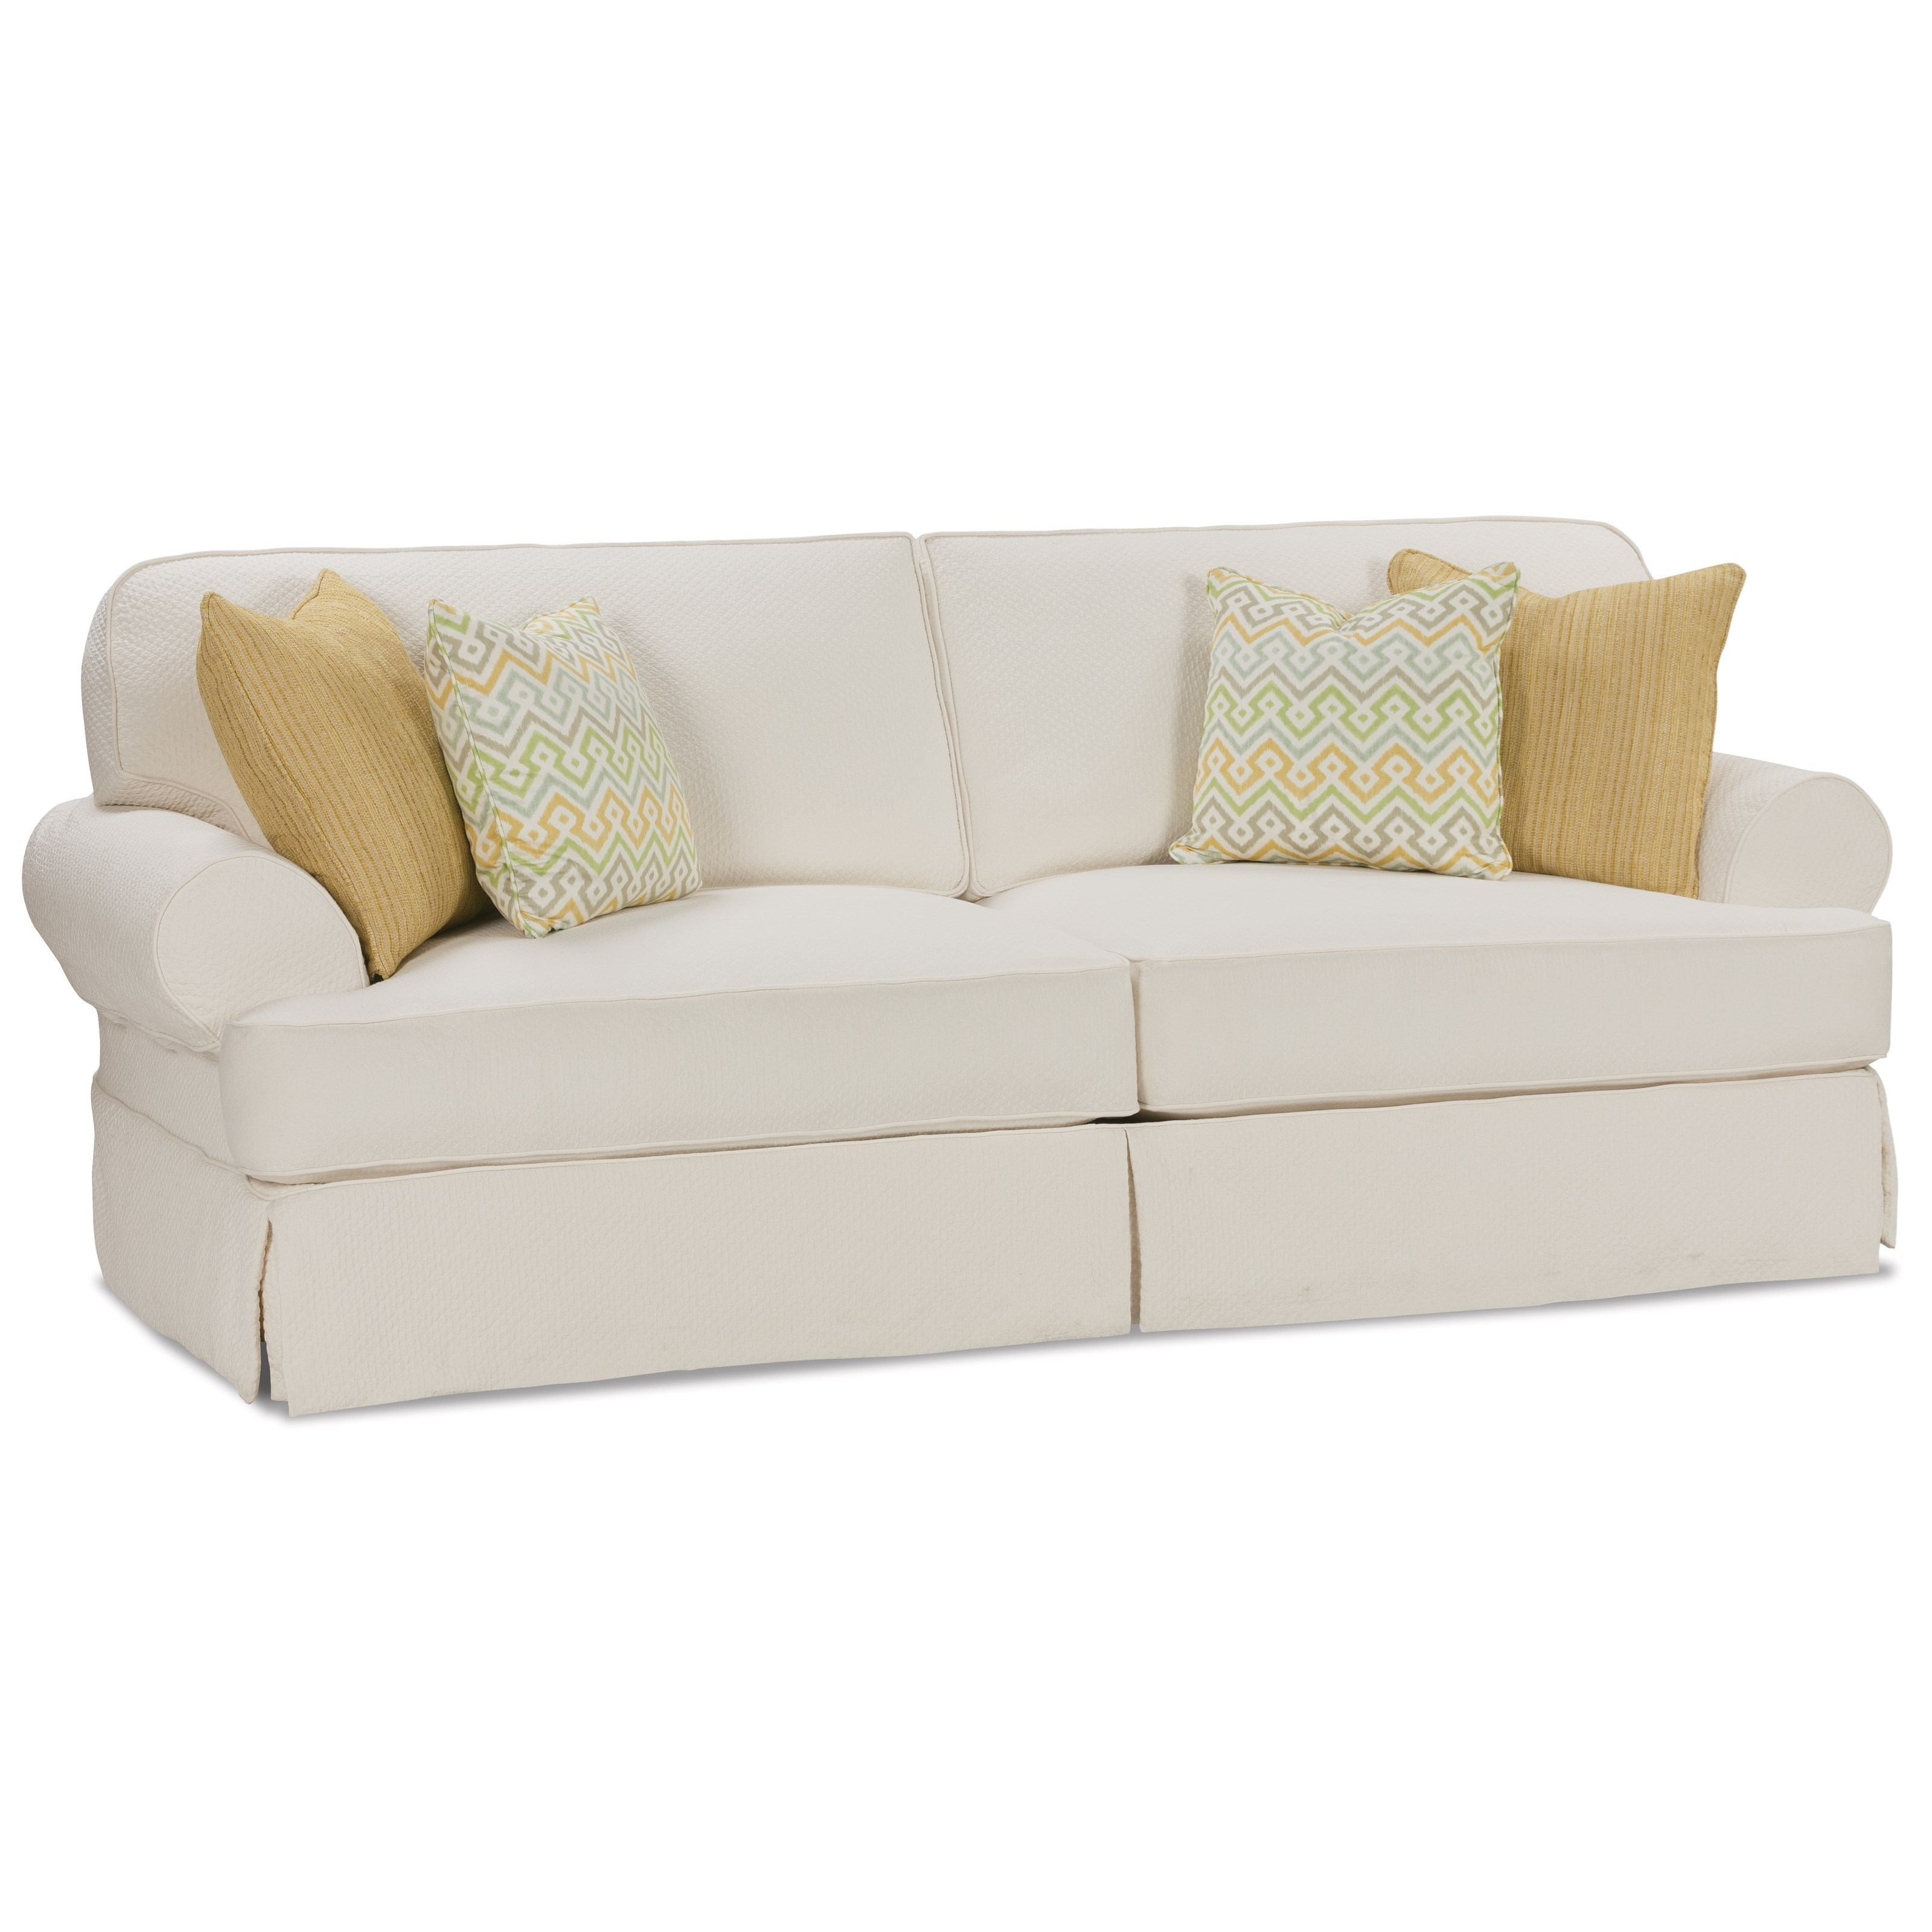 2 seater recliner sofa covers mart lubbock hours rowe addison traditional seat with slipcover and